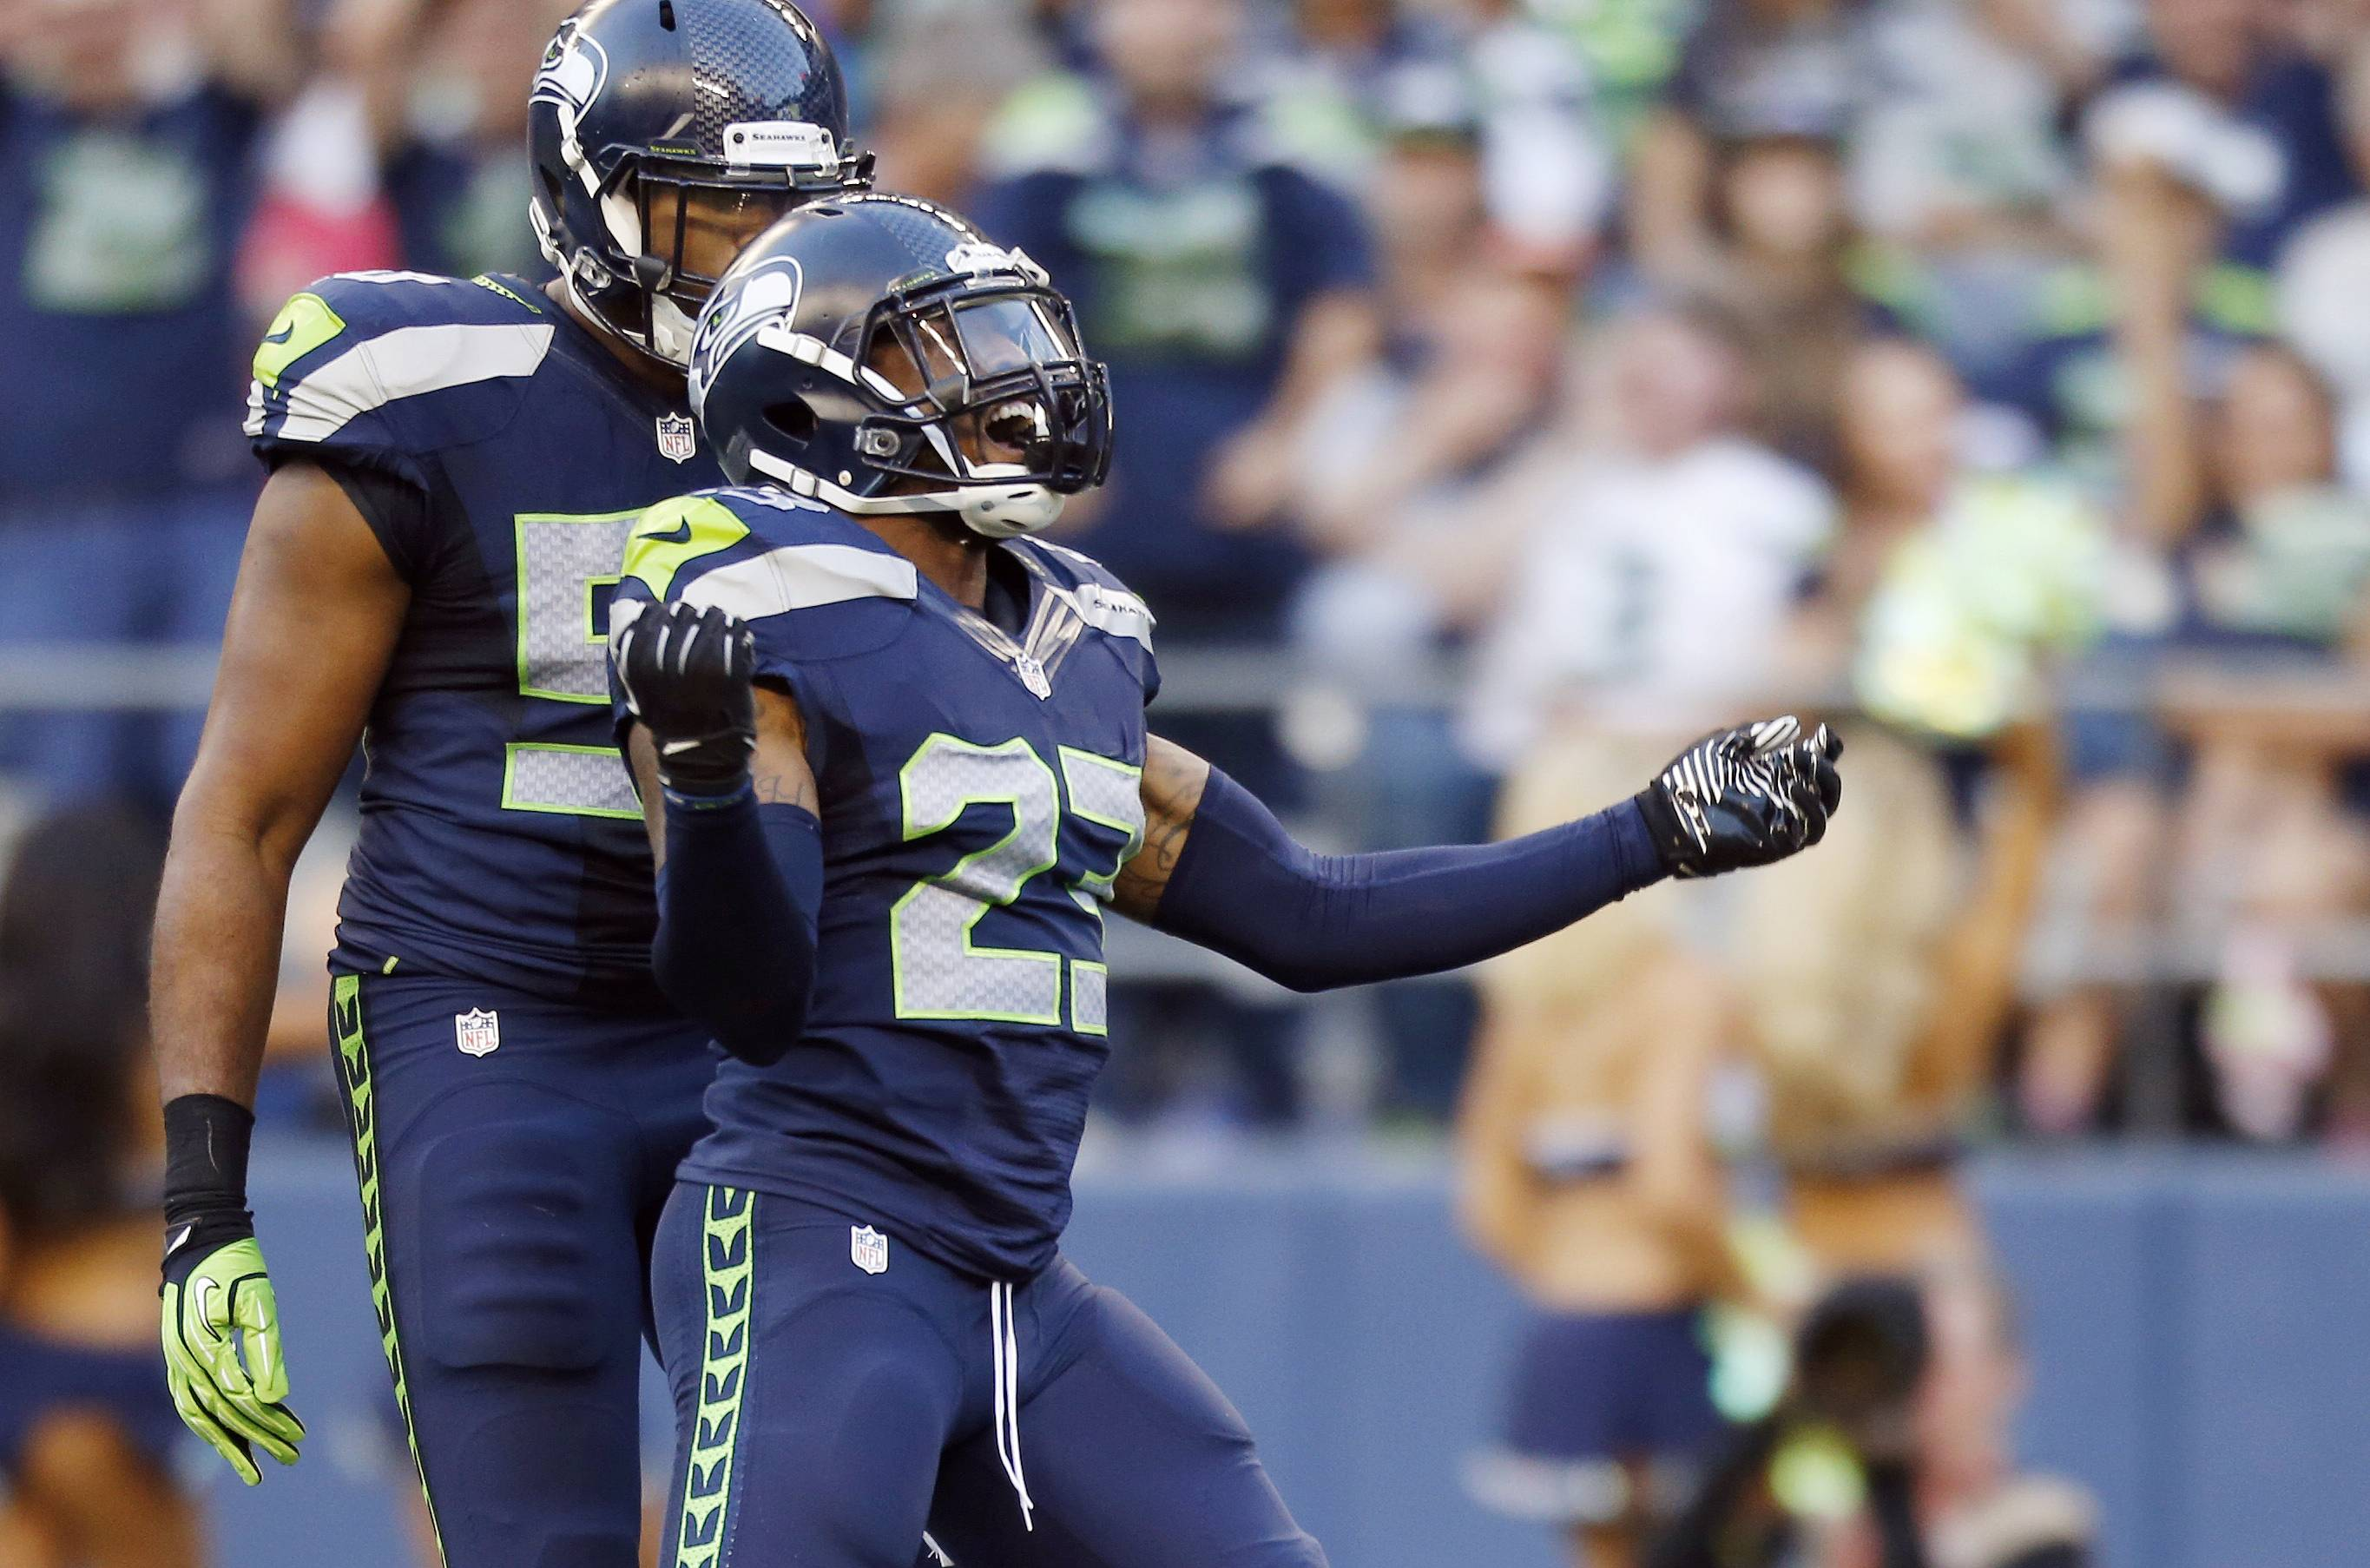 Seahawks strong safety Jeron Johnson (23) celebrates a tackle with outside linebacker K.J. Wright, left, in the first half of a preseason NFL football game against the San Diego Chargers, Friday, Aug. 15, 2014, in Seattle.